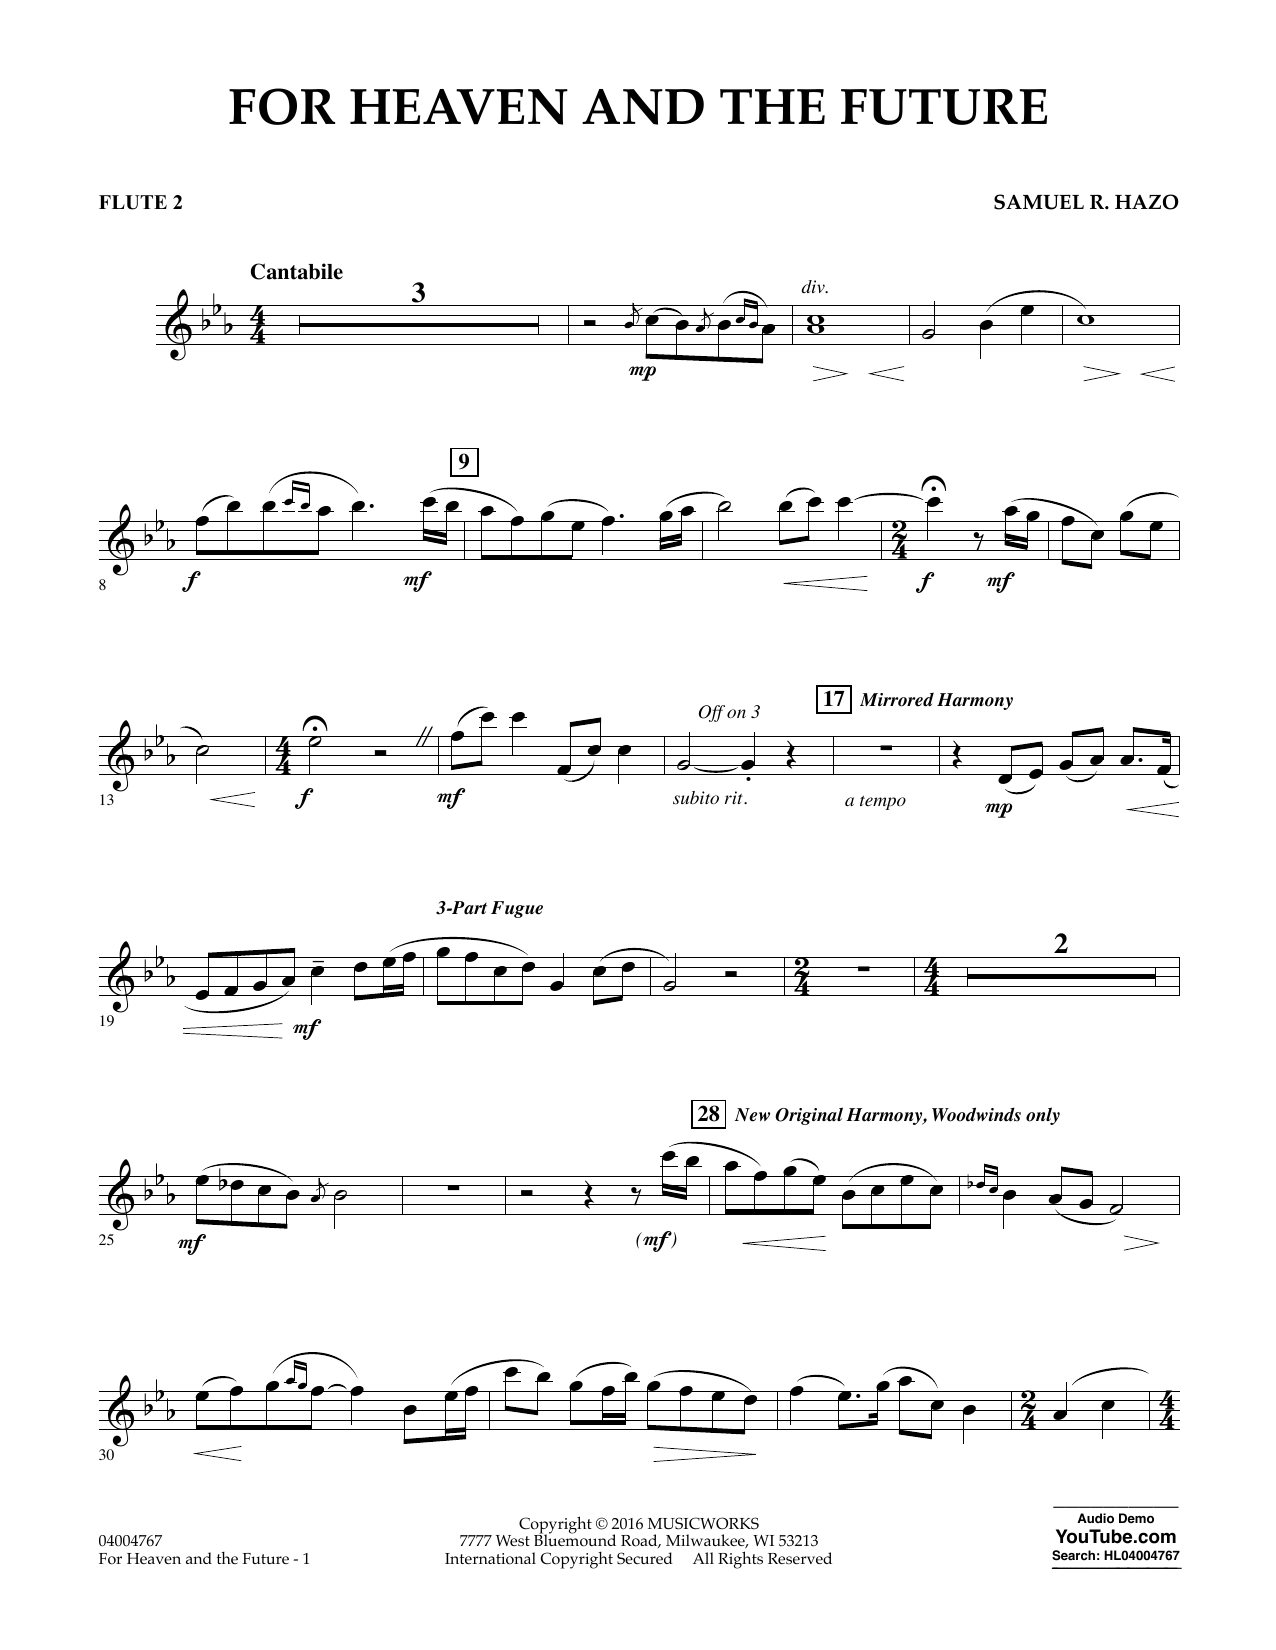 For Heaven and the Future - Flute 2 (Concert Band)